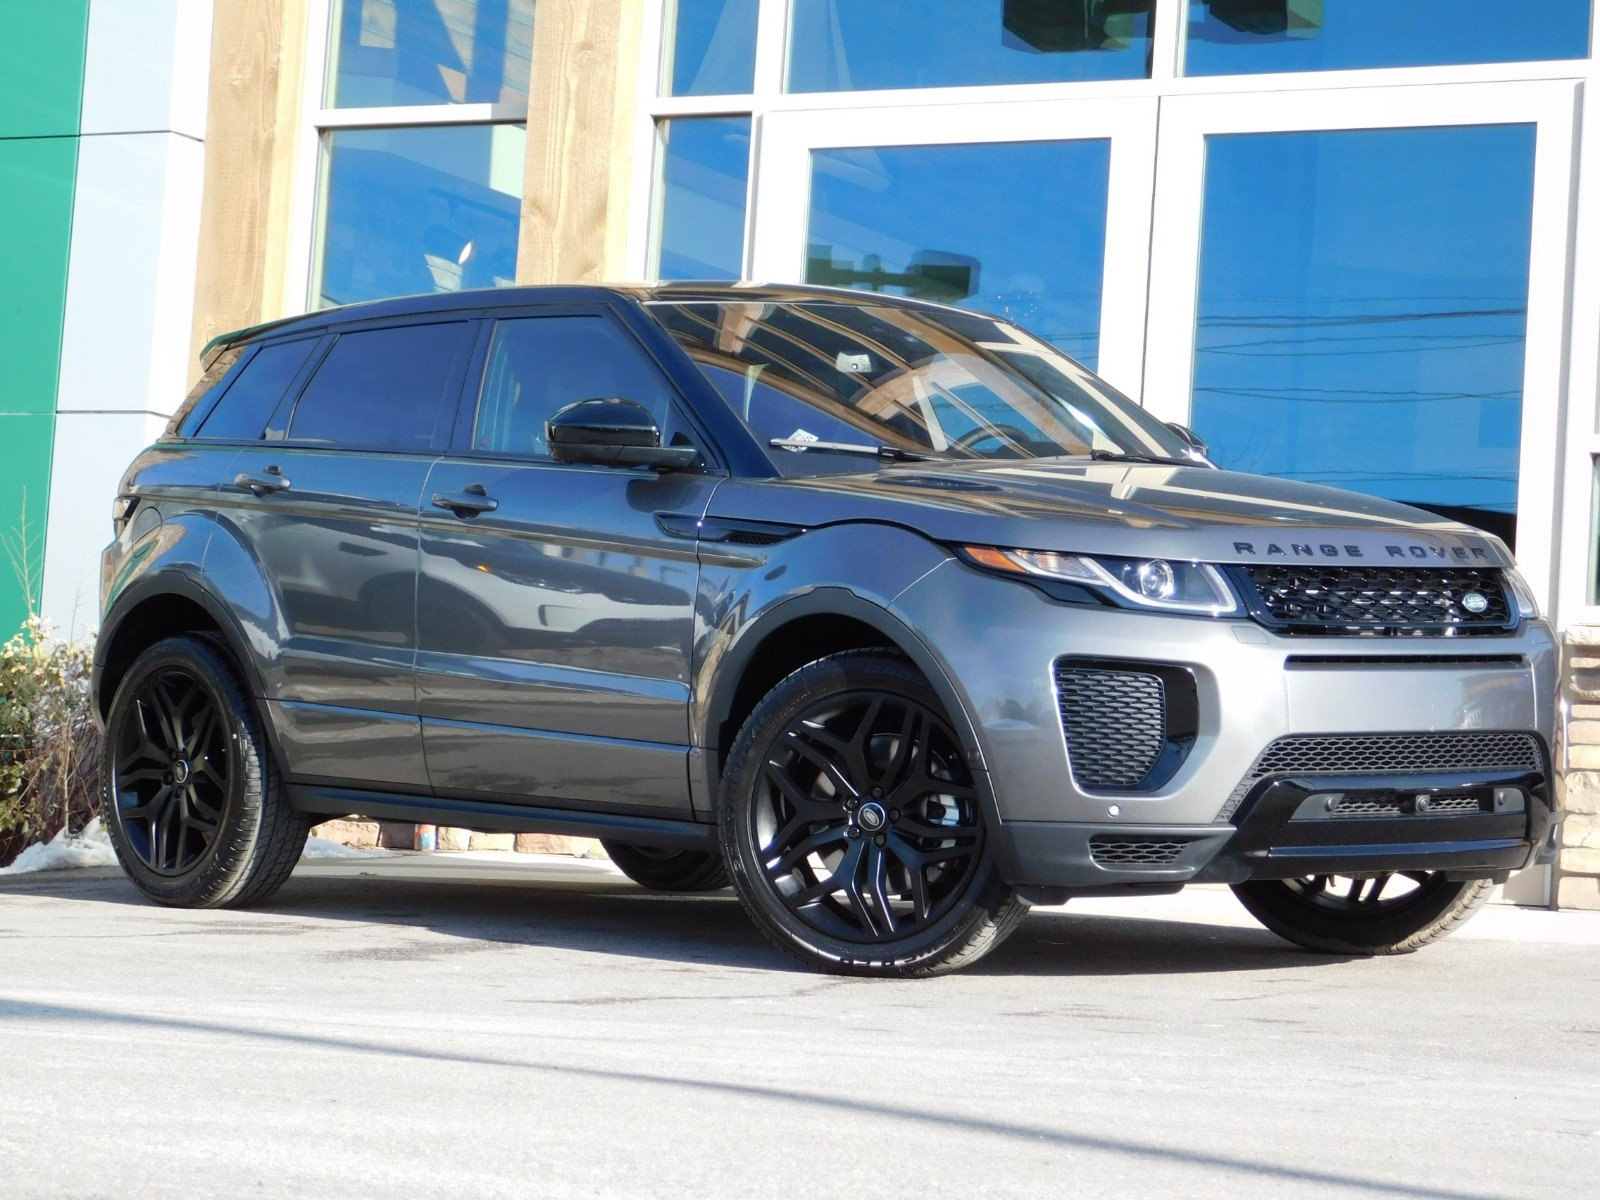 62 The 2019 Range Rover Evoque Xl First Drive